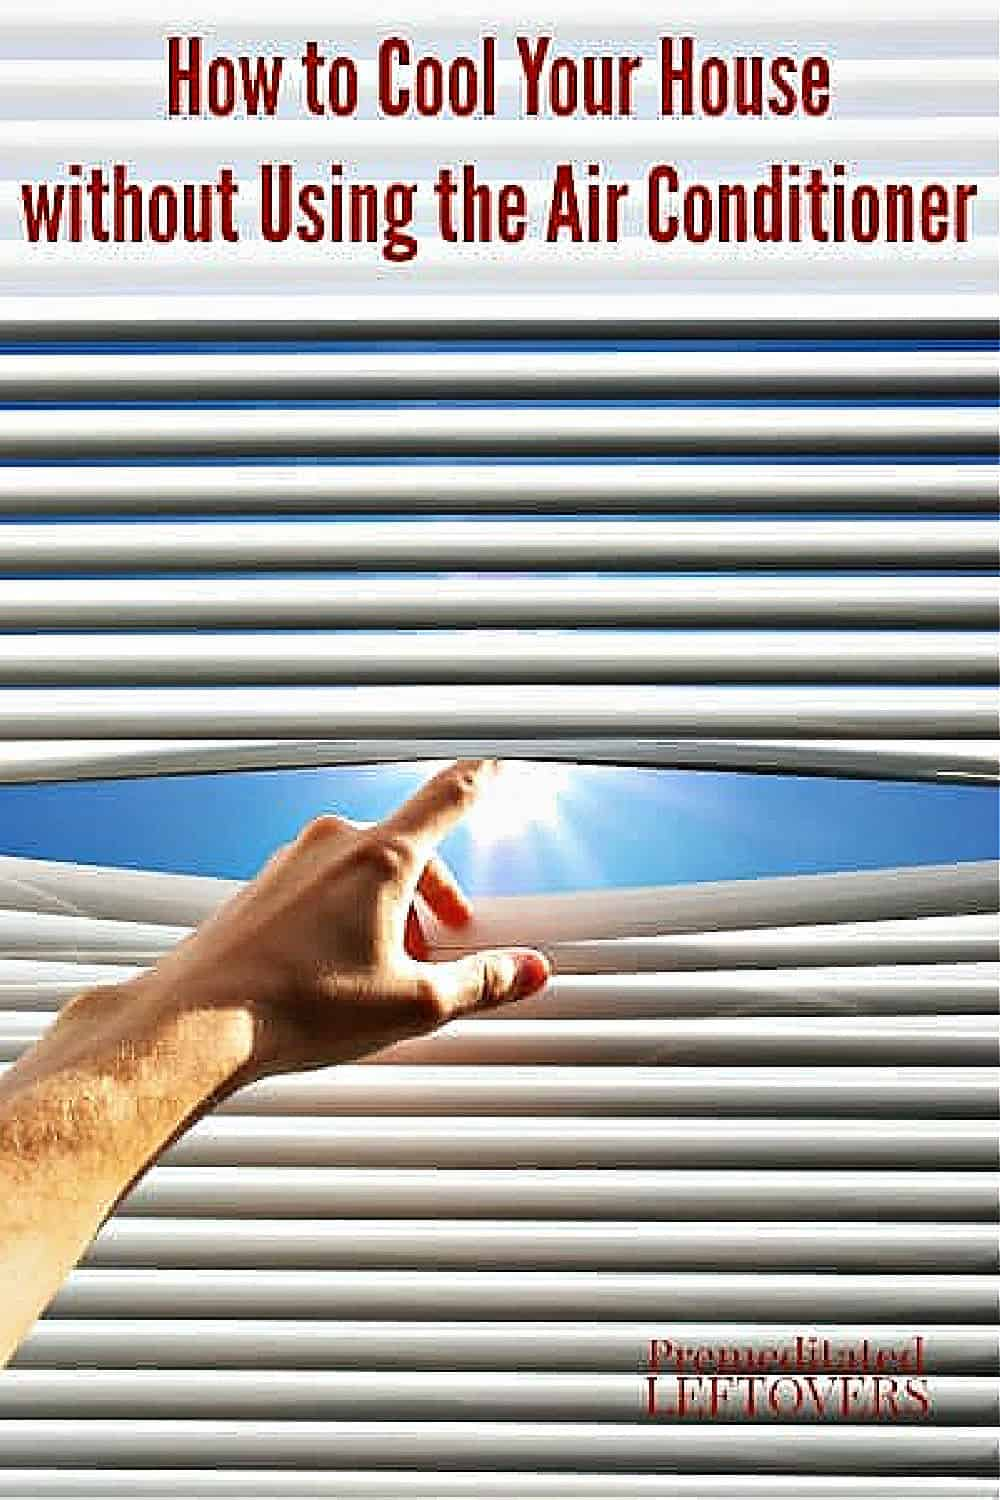 closed blinds blocking out the hot summer sun to keep the house cool without using the air conditioner